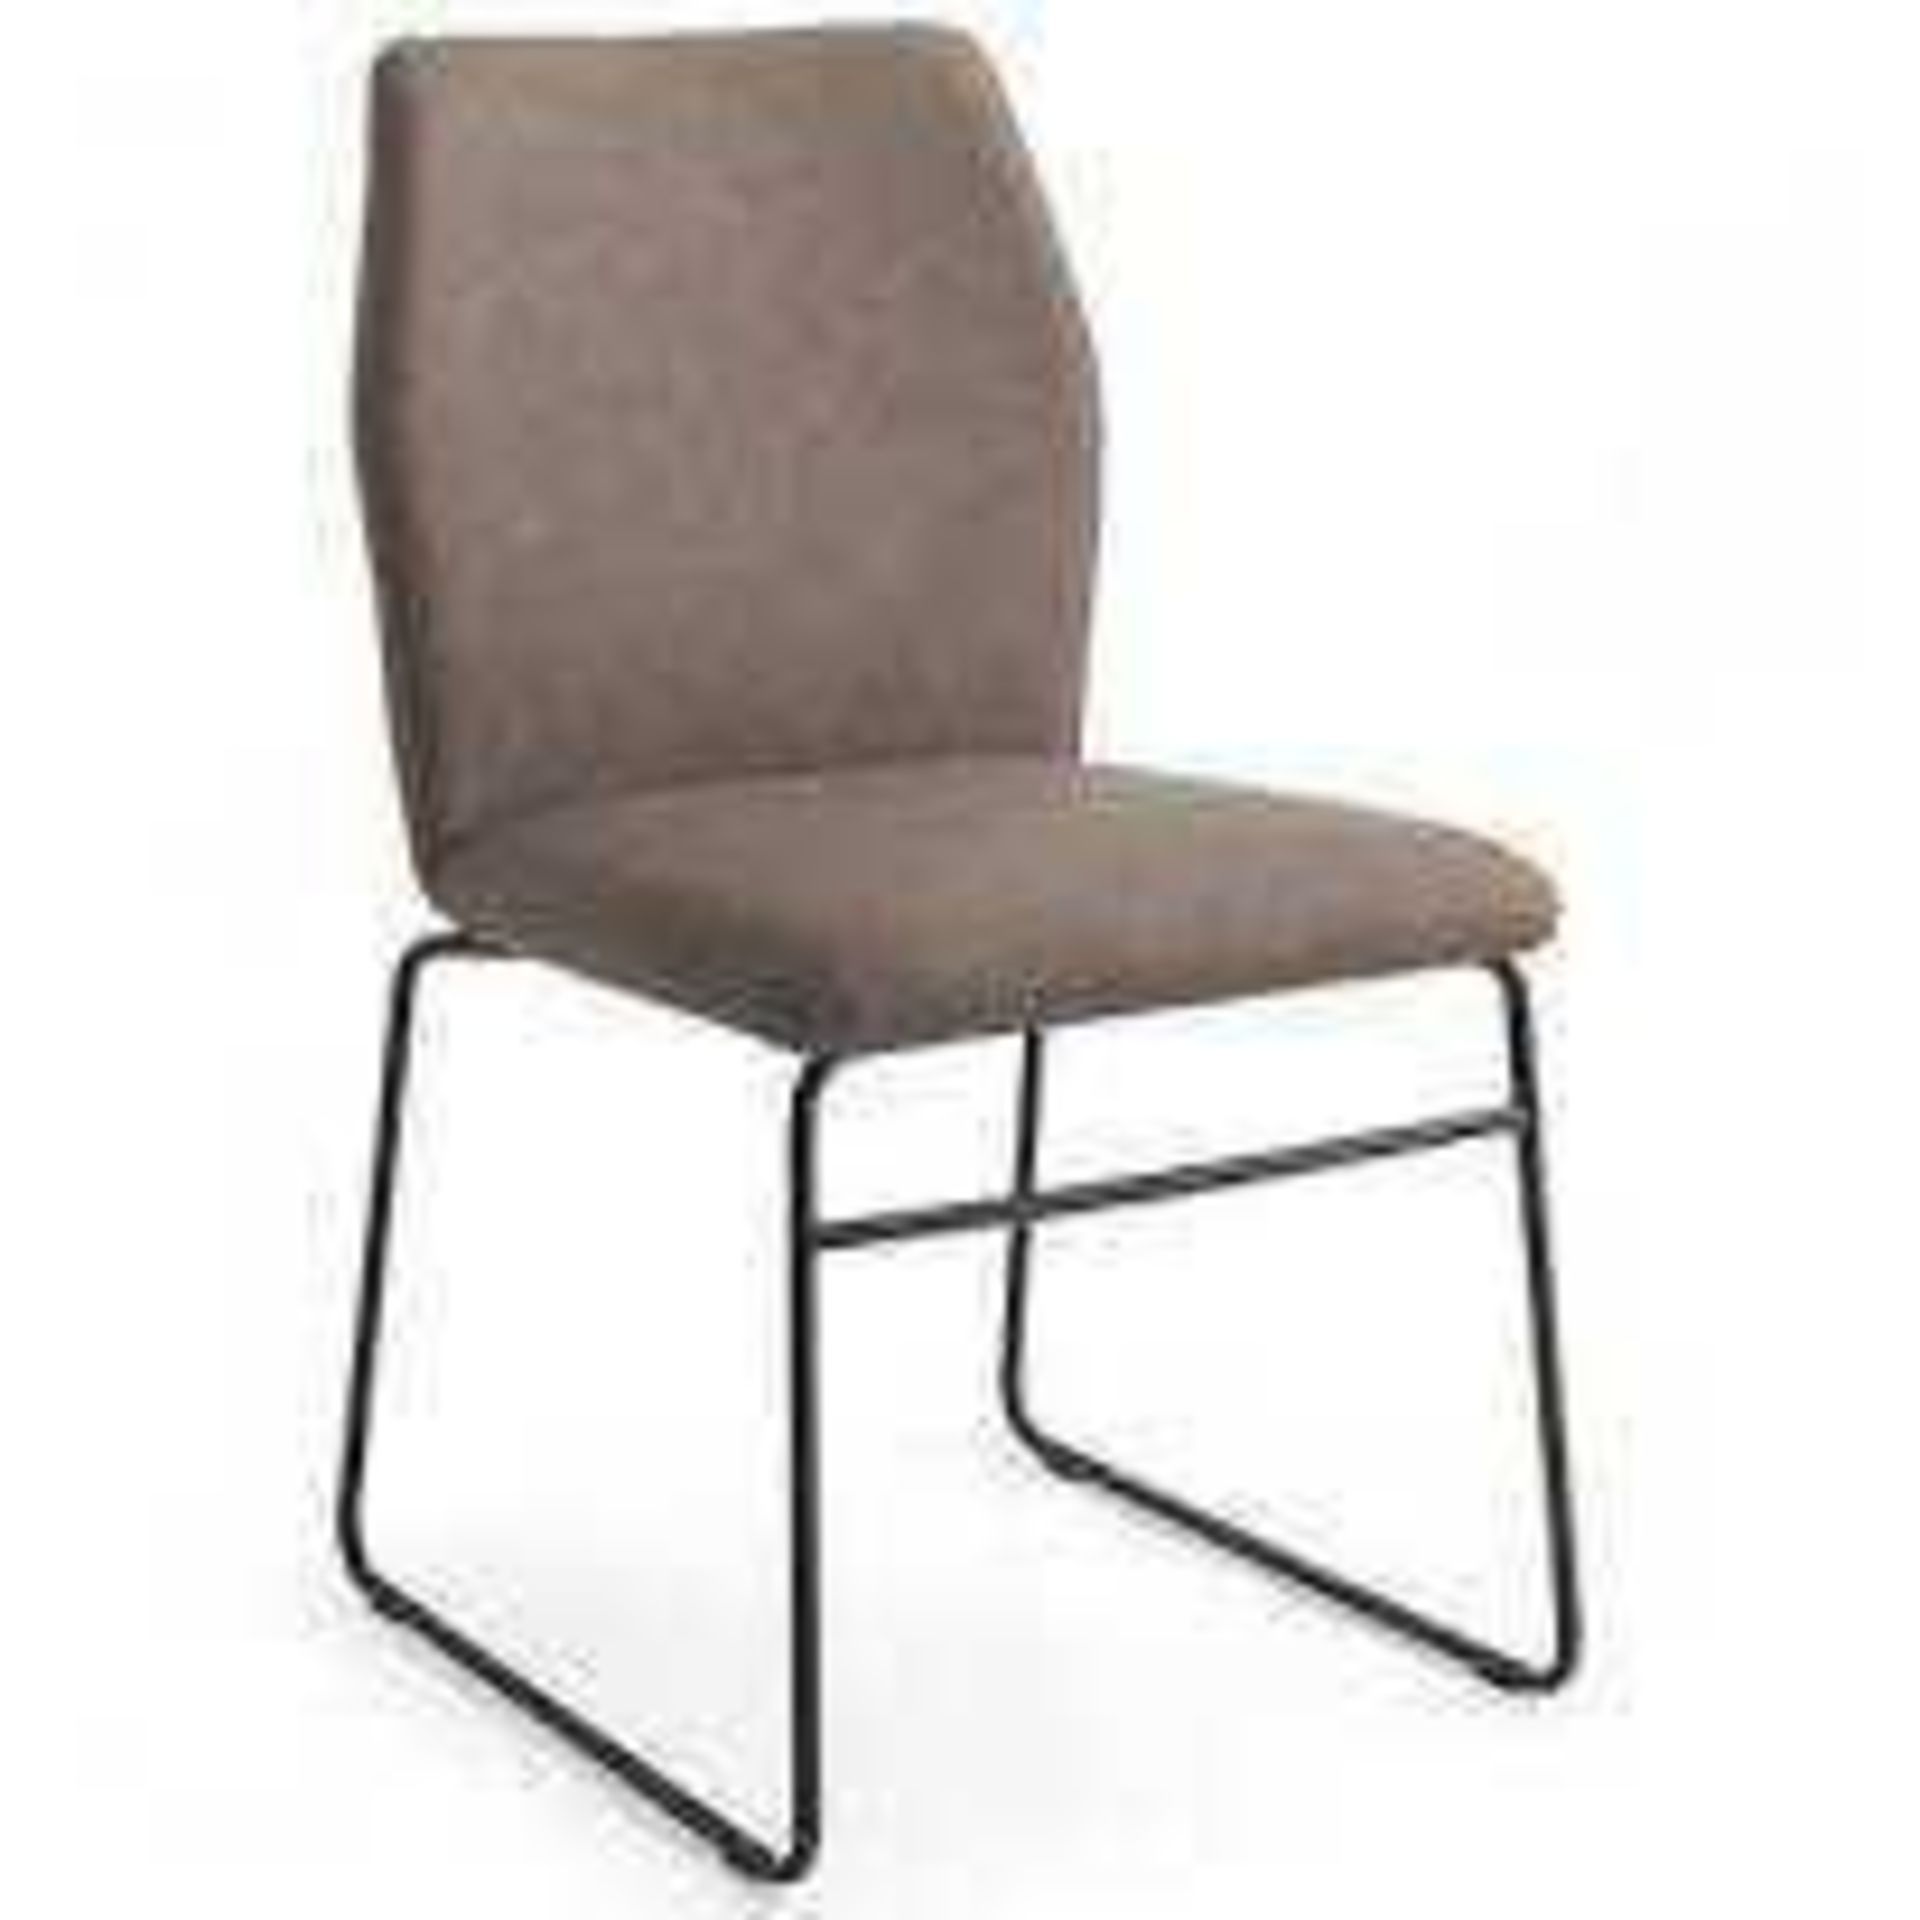 Combined RRP £200 Lot To Contain 2 Unboxed Brown Fabric Chairs